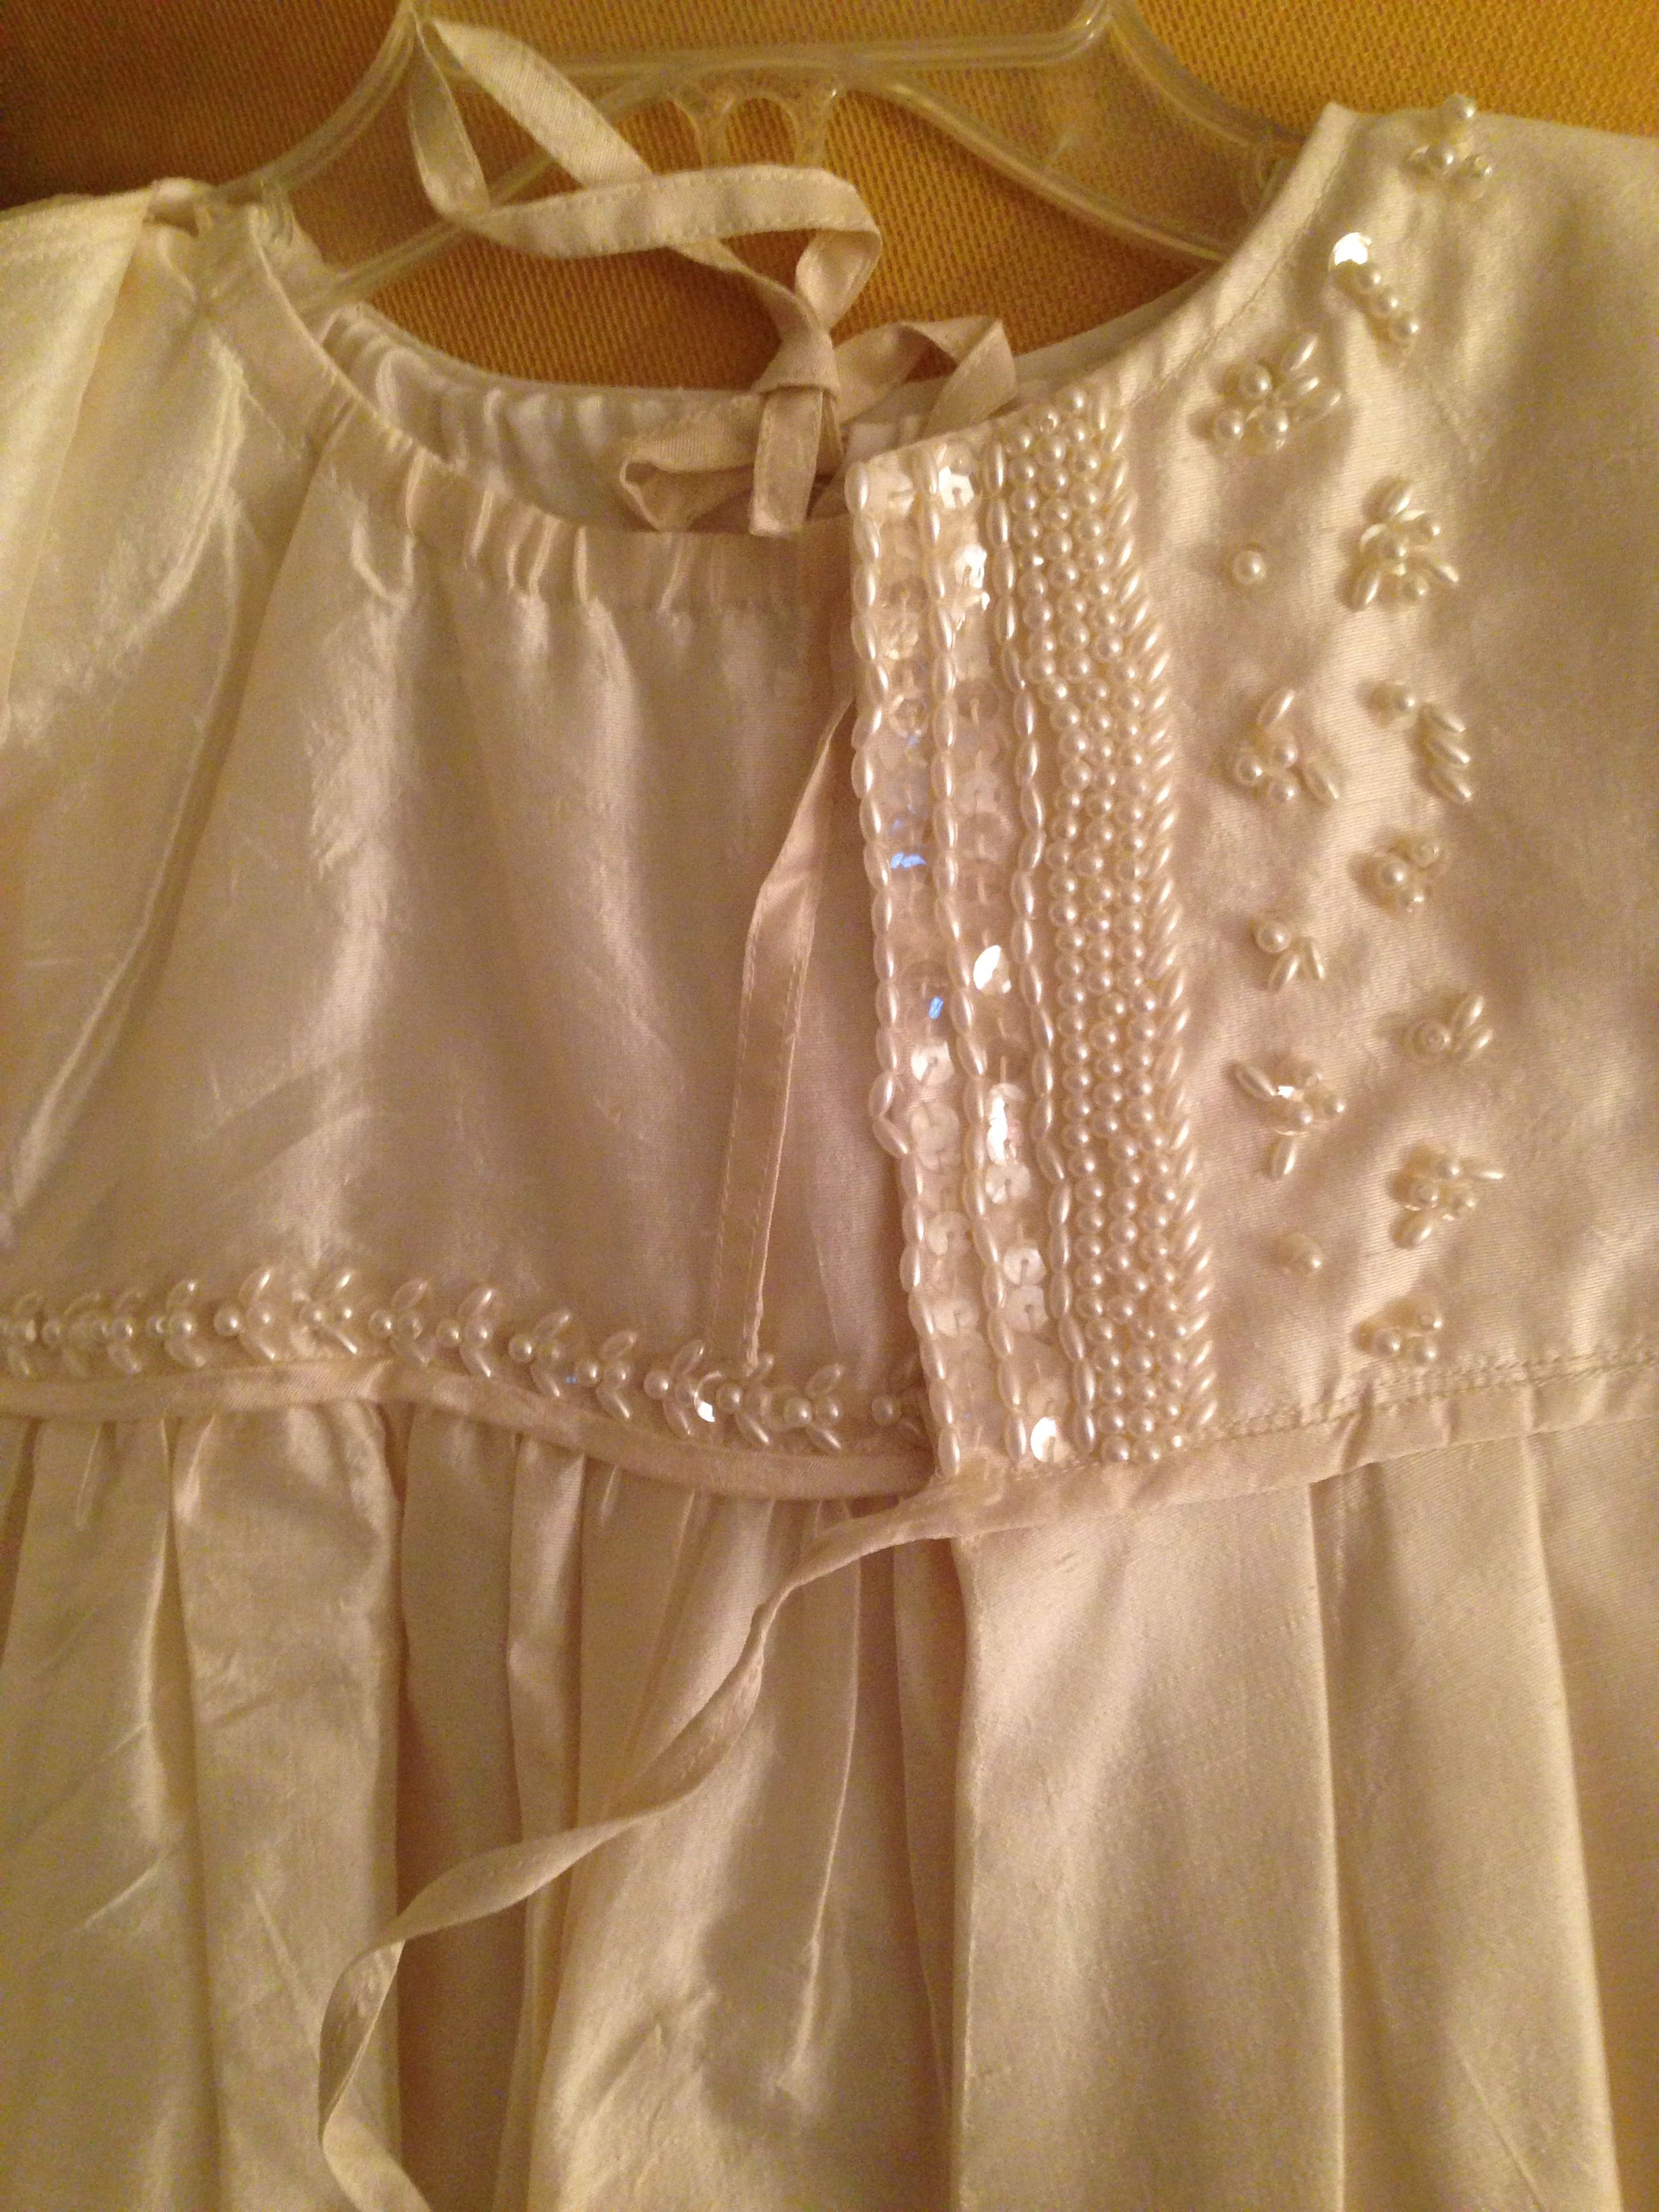 Hand bead embroidery for a Christening Gown for my sons - handmade from my wedding dress.